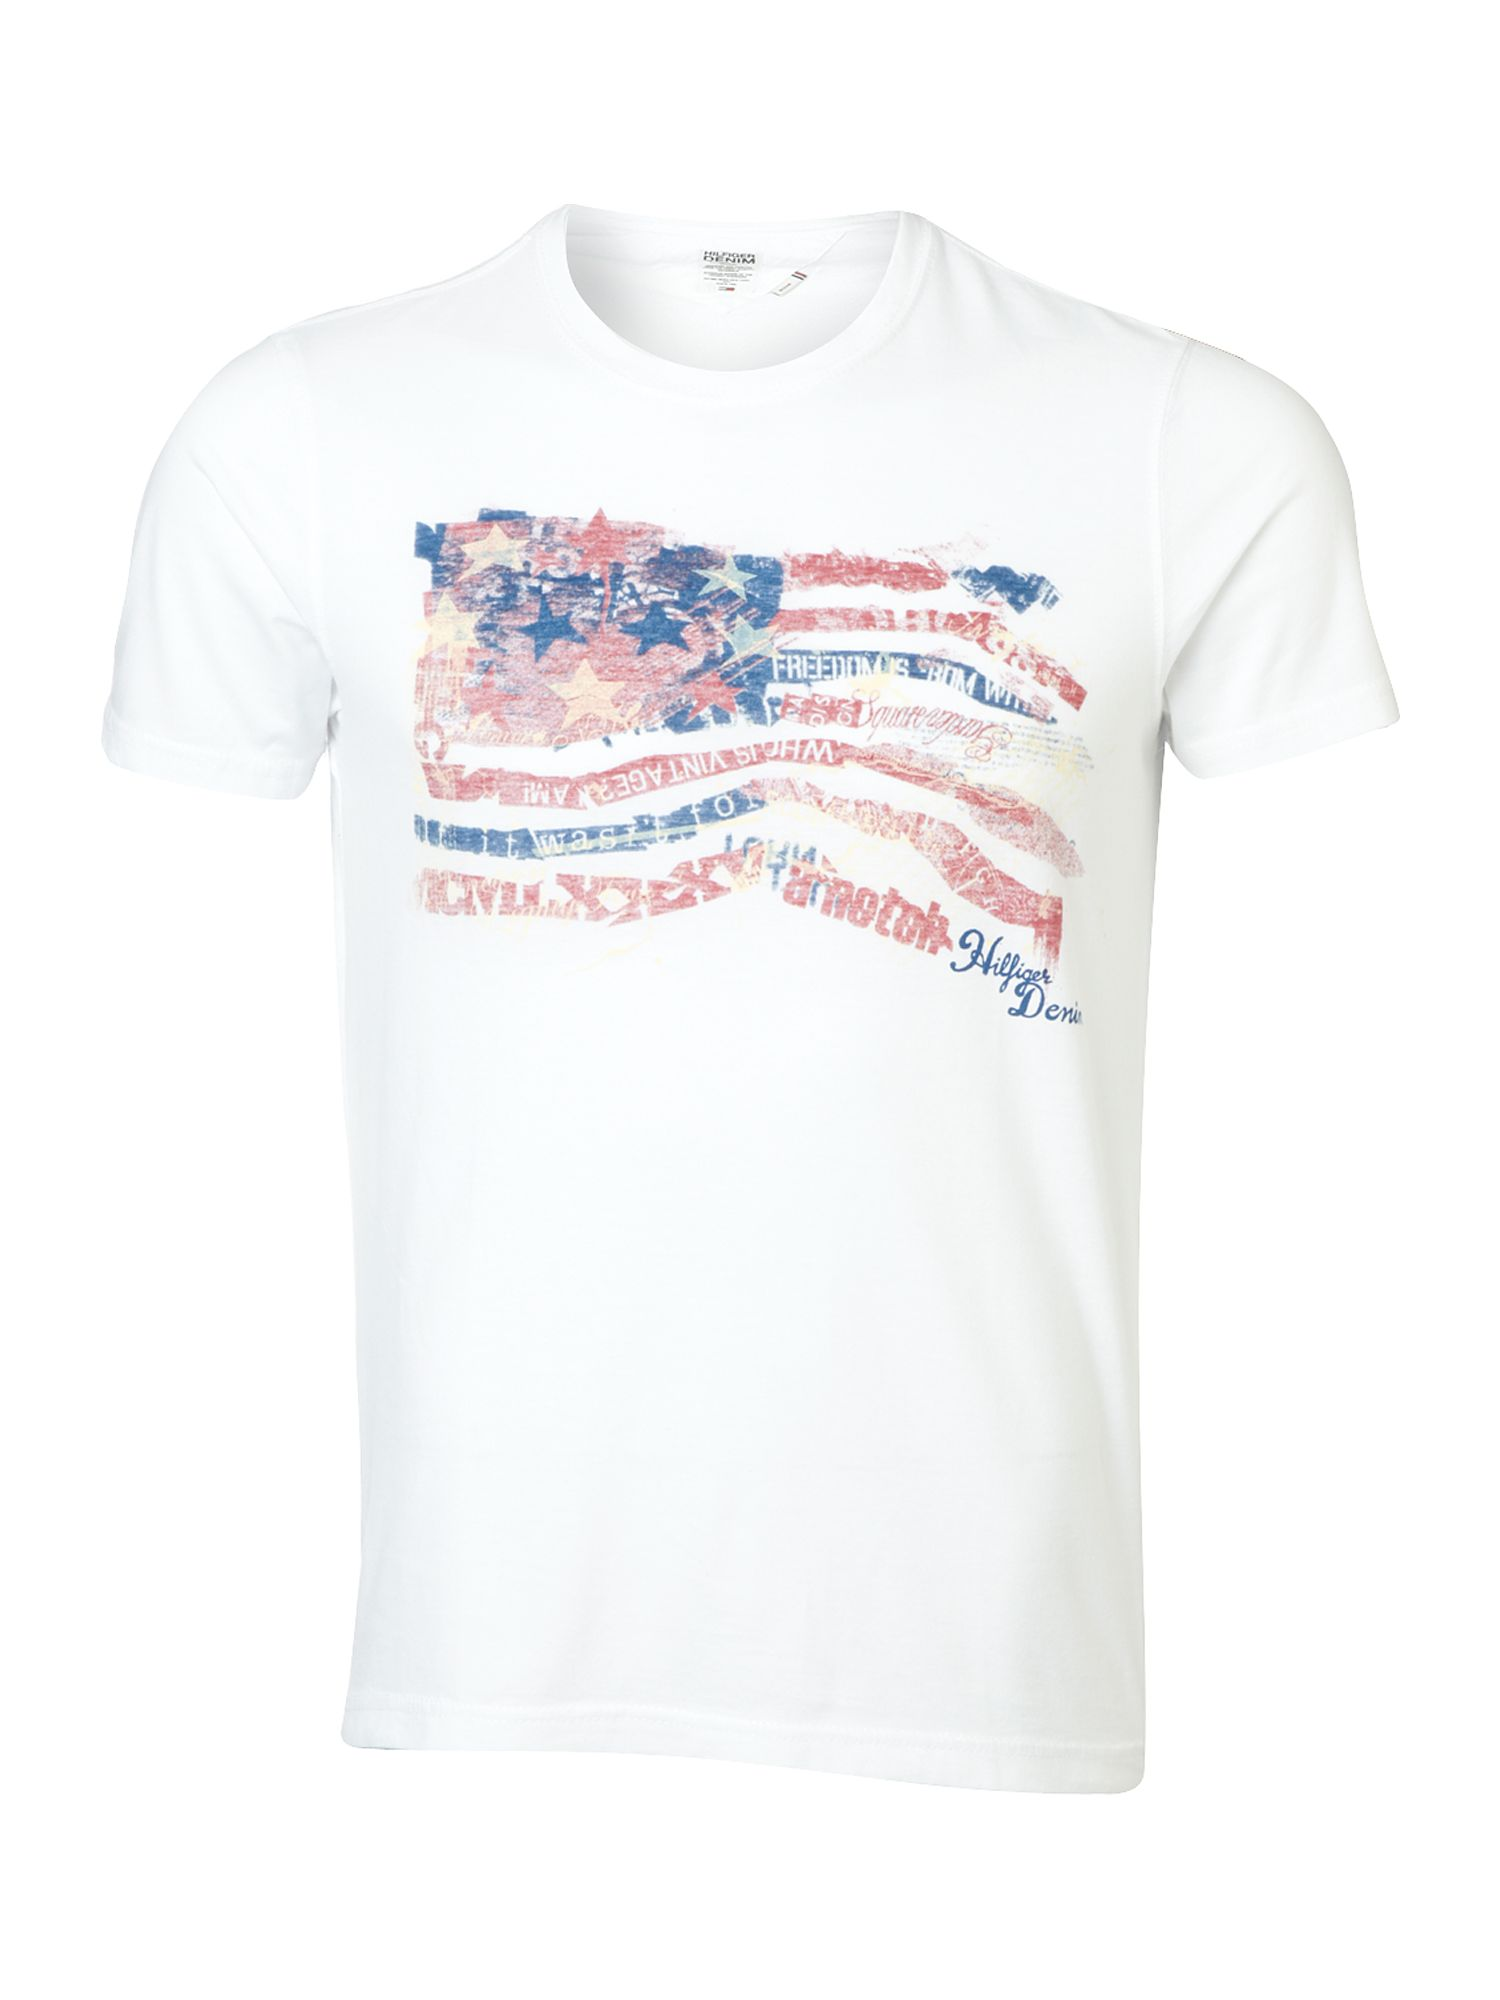 Tommy Hilfiger Frank cotton T-shirt White product image